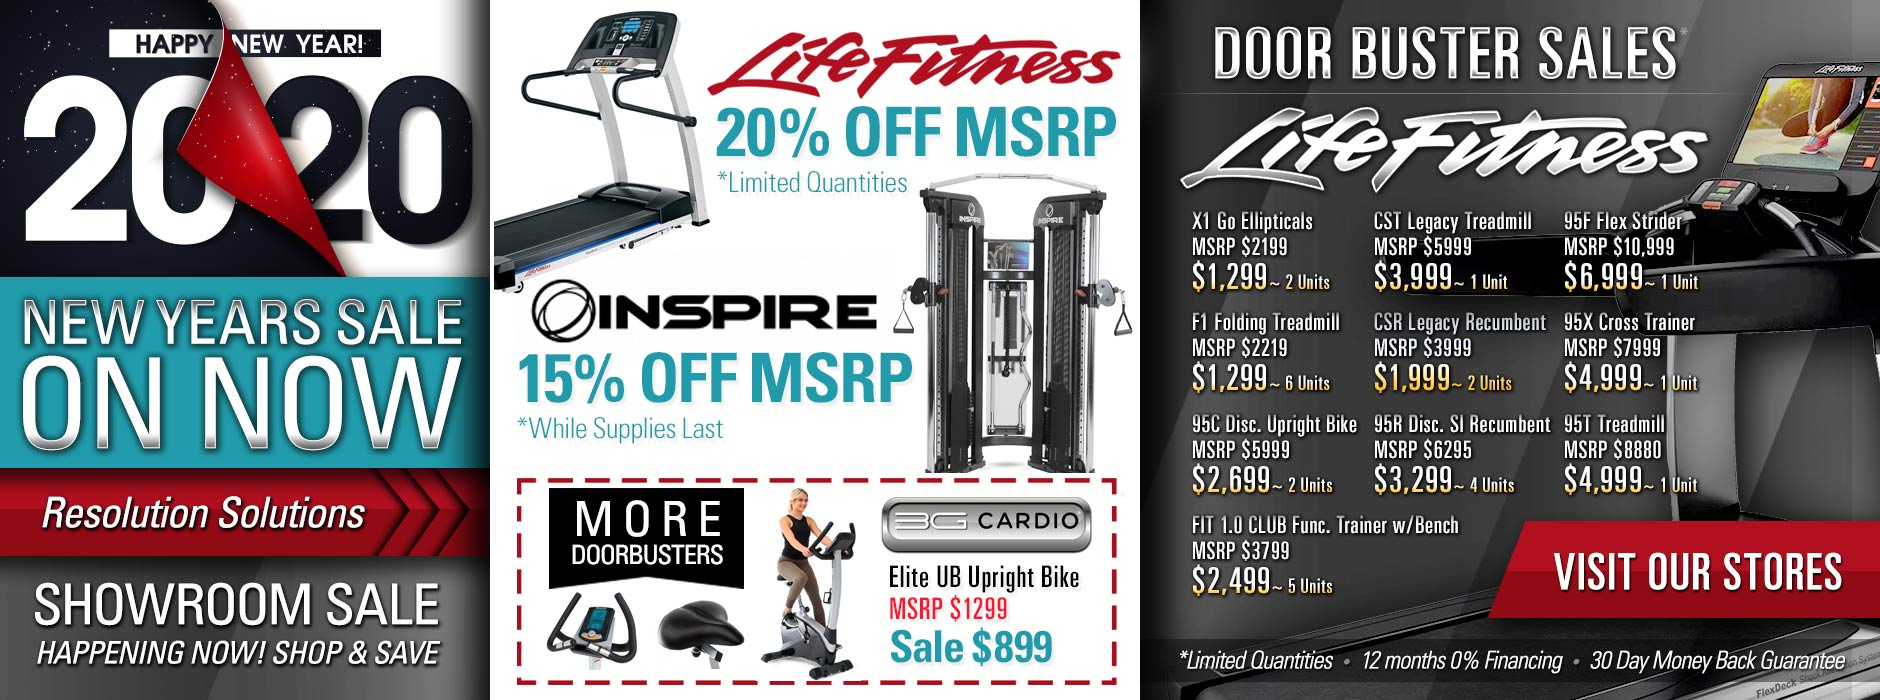 New Years 2020 Fitness Equipment Arizona Resolution Solution Sale at our At Home Fitness Showrooms